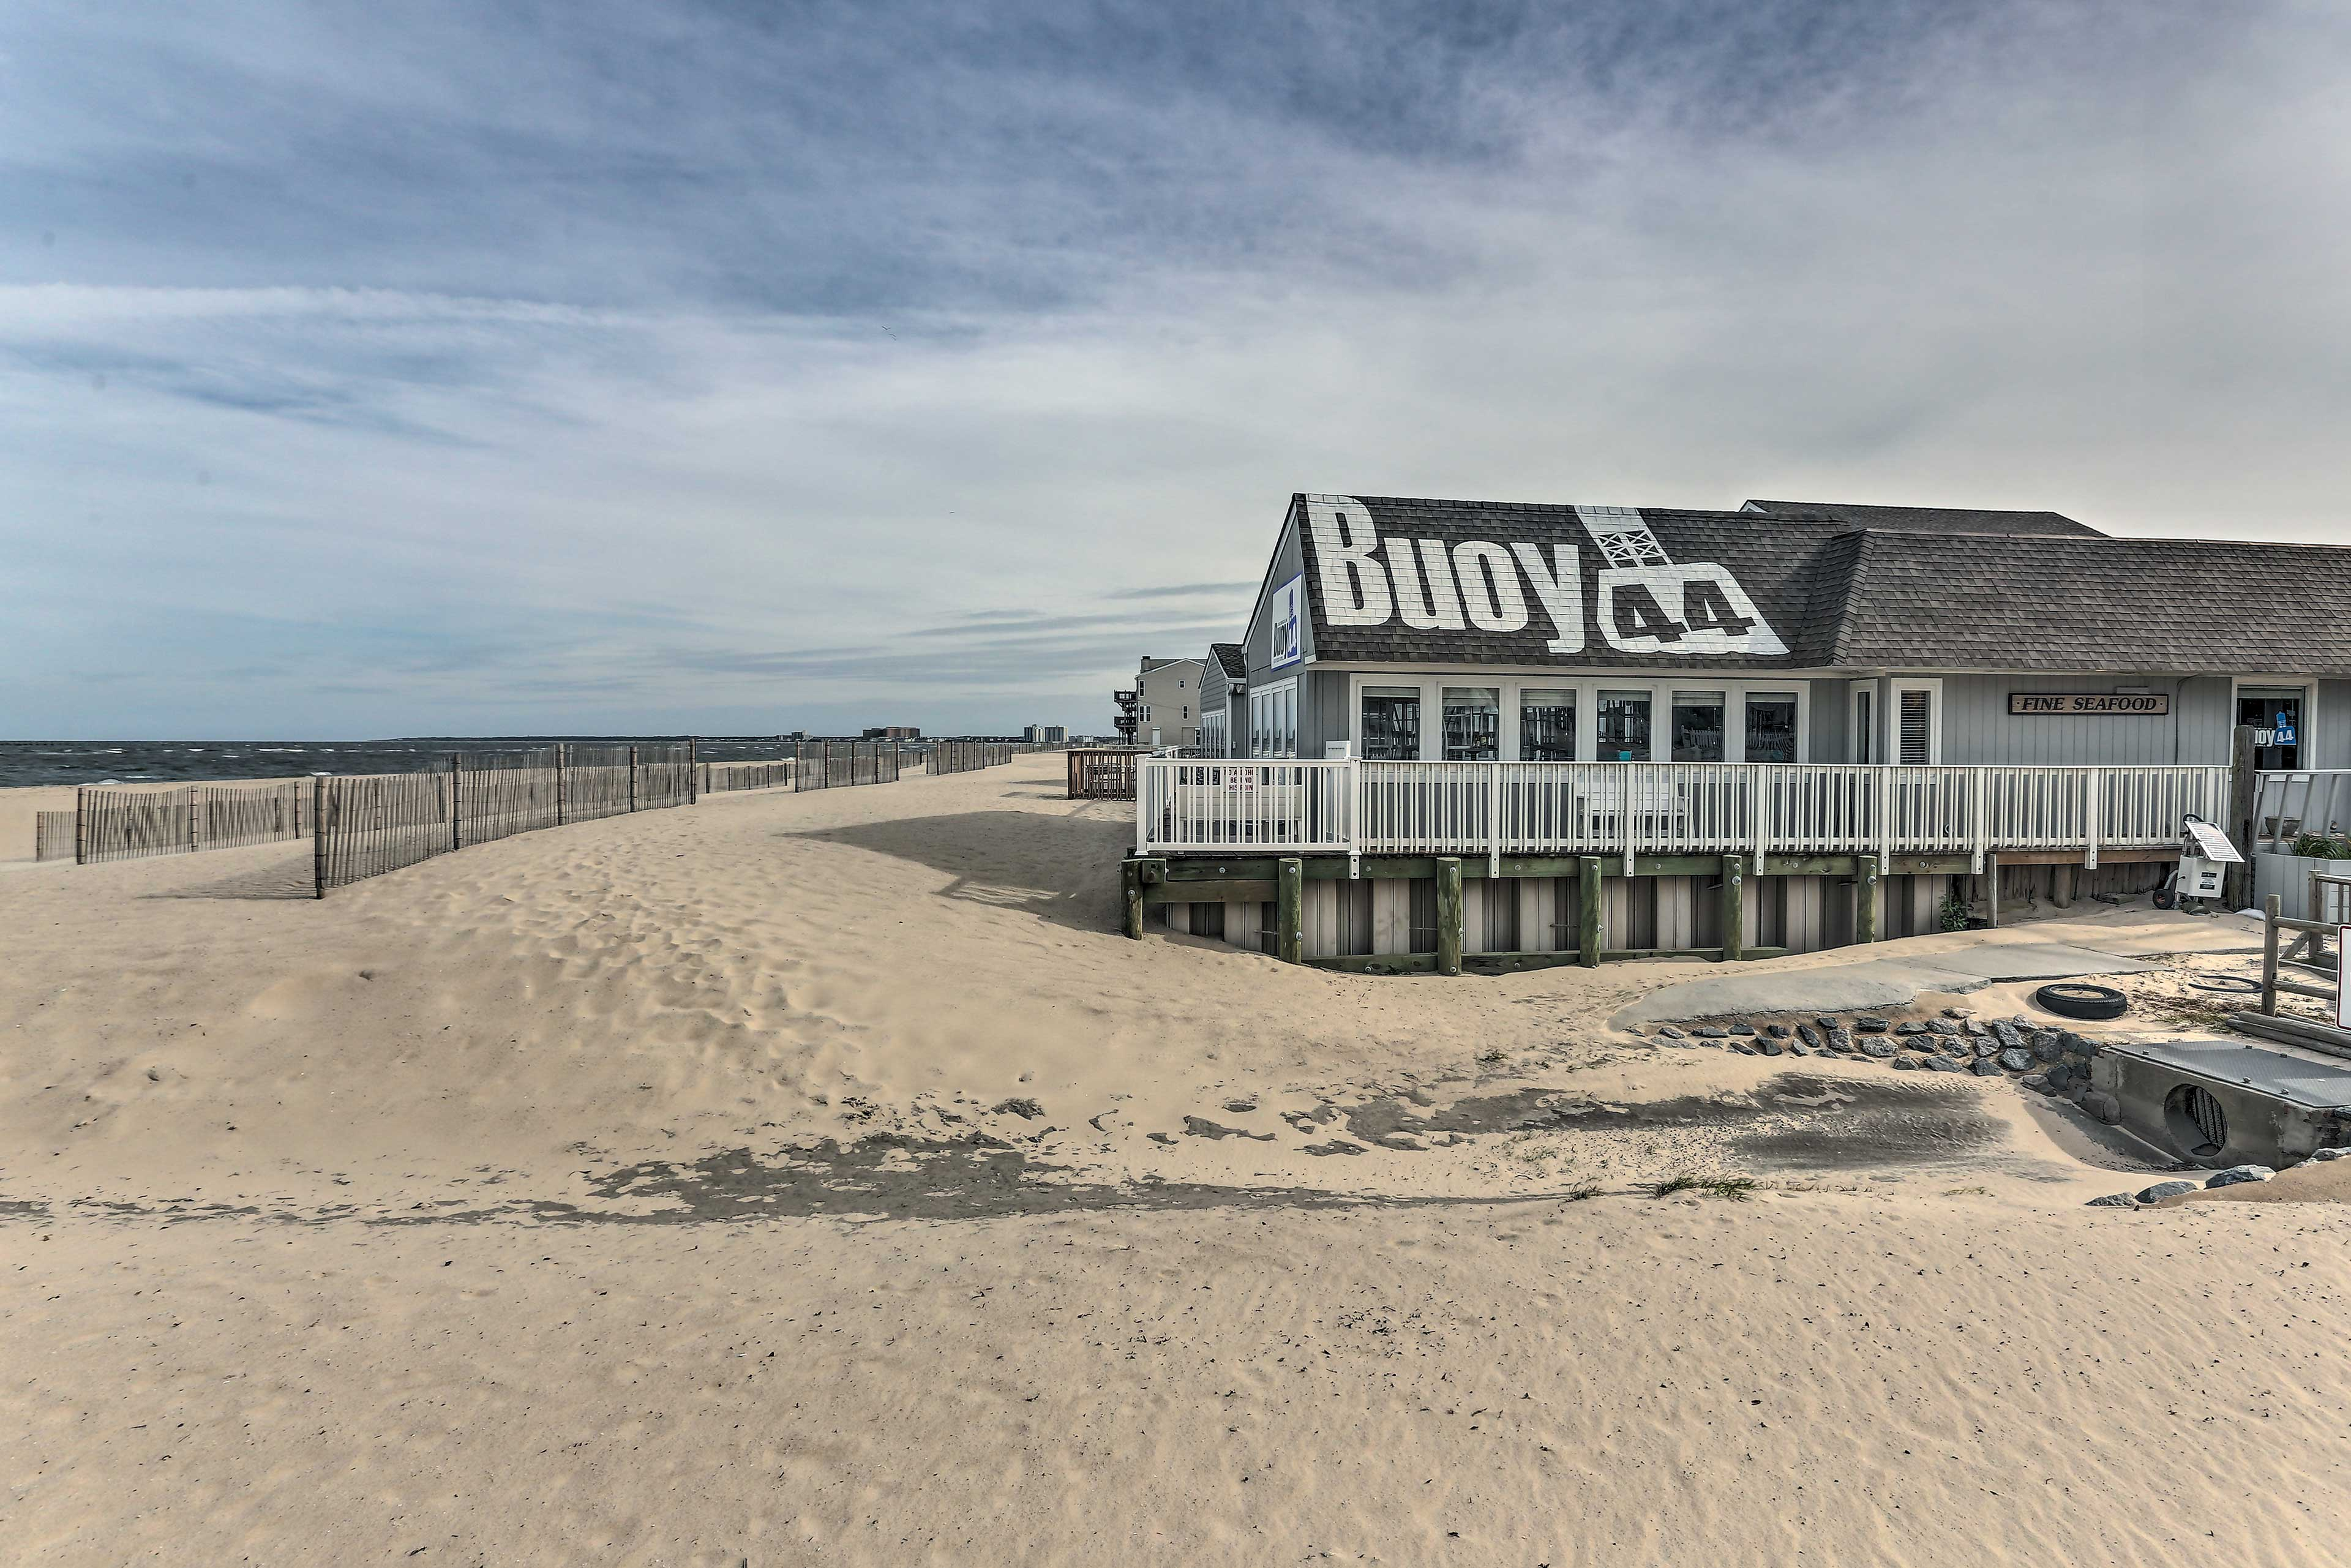 You'll be just 1 block away from the beach!